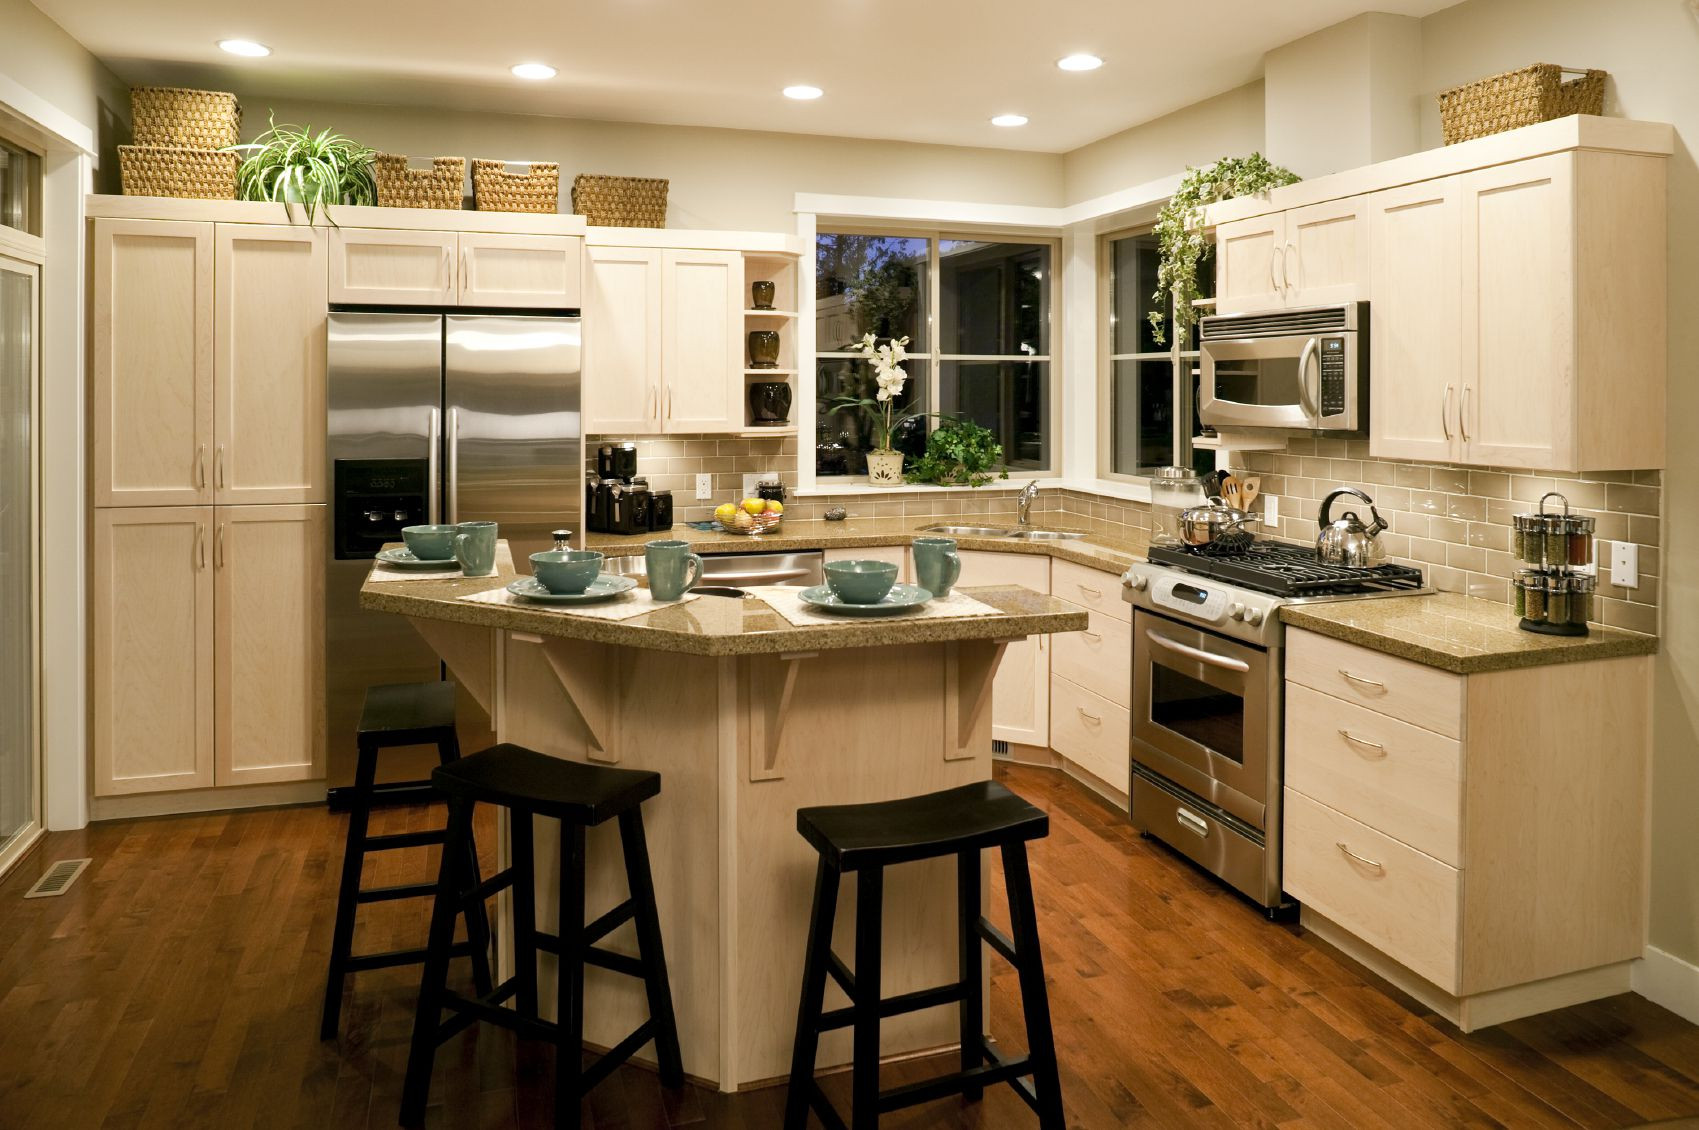 Small Kitchen With Island Ideas  Awesome Kitchen Island Designs to Realize Well Designed